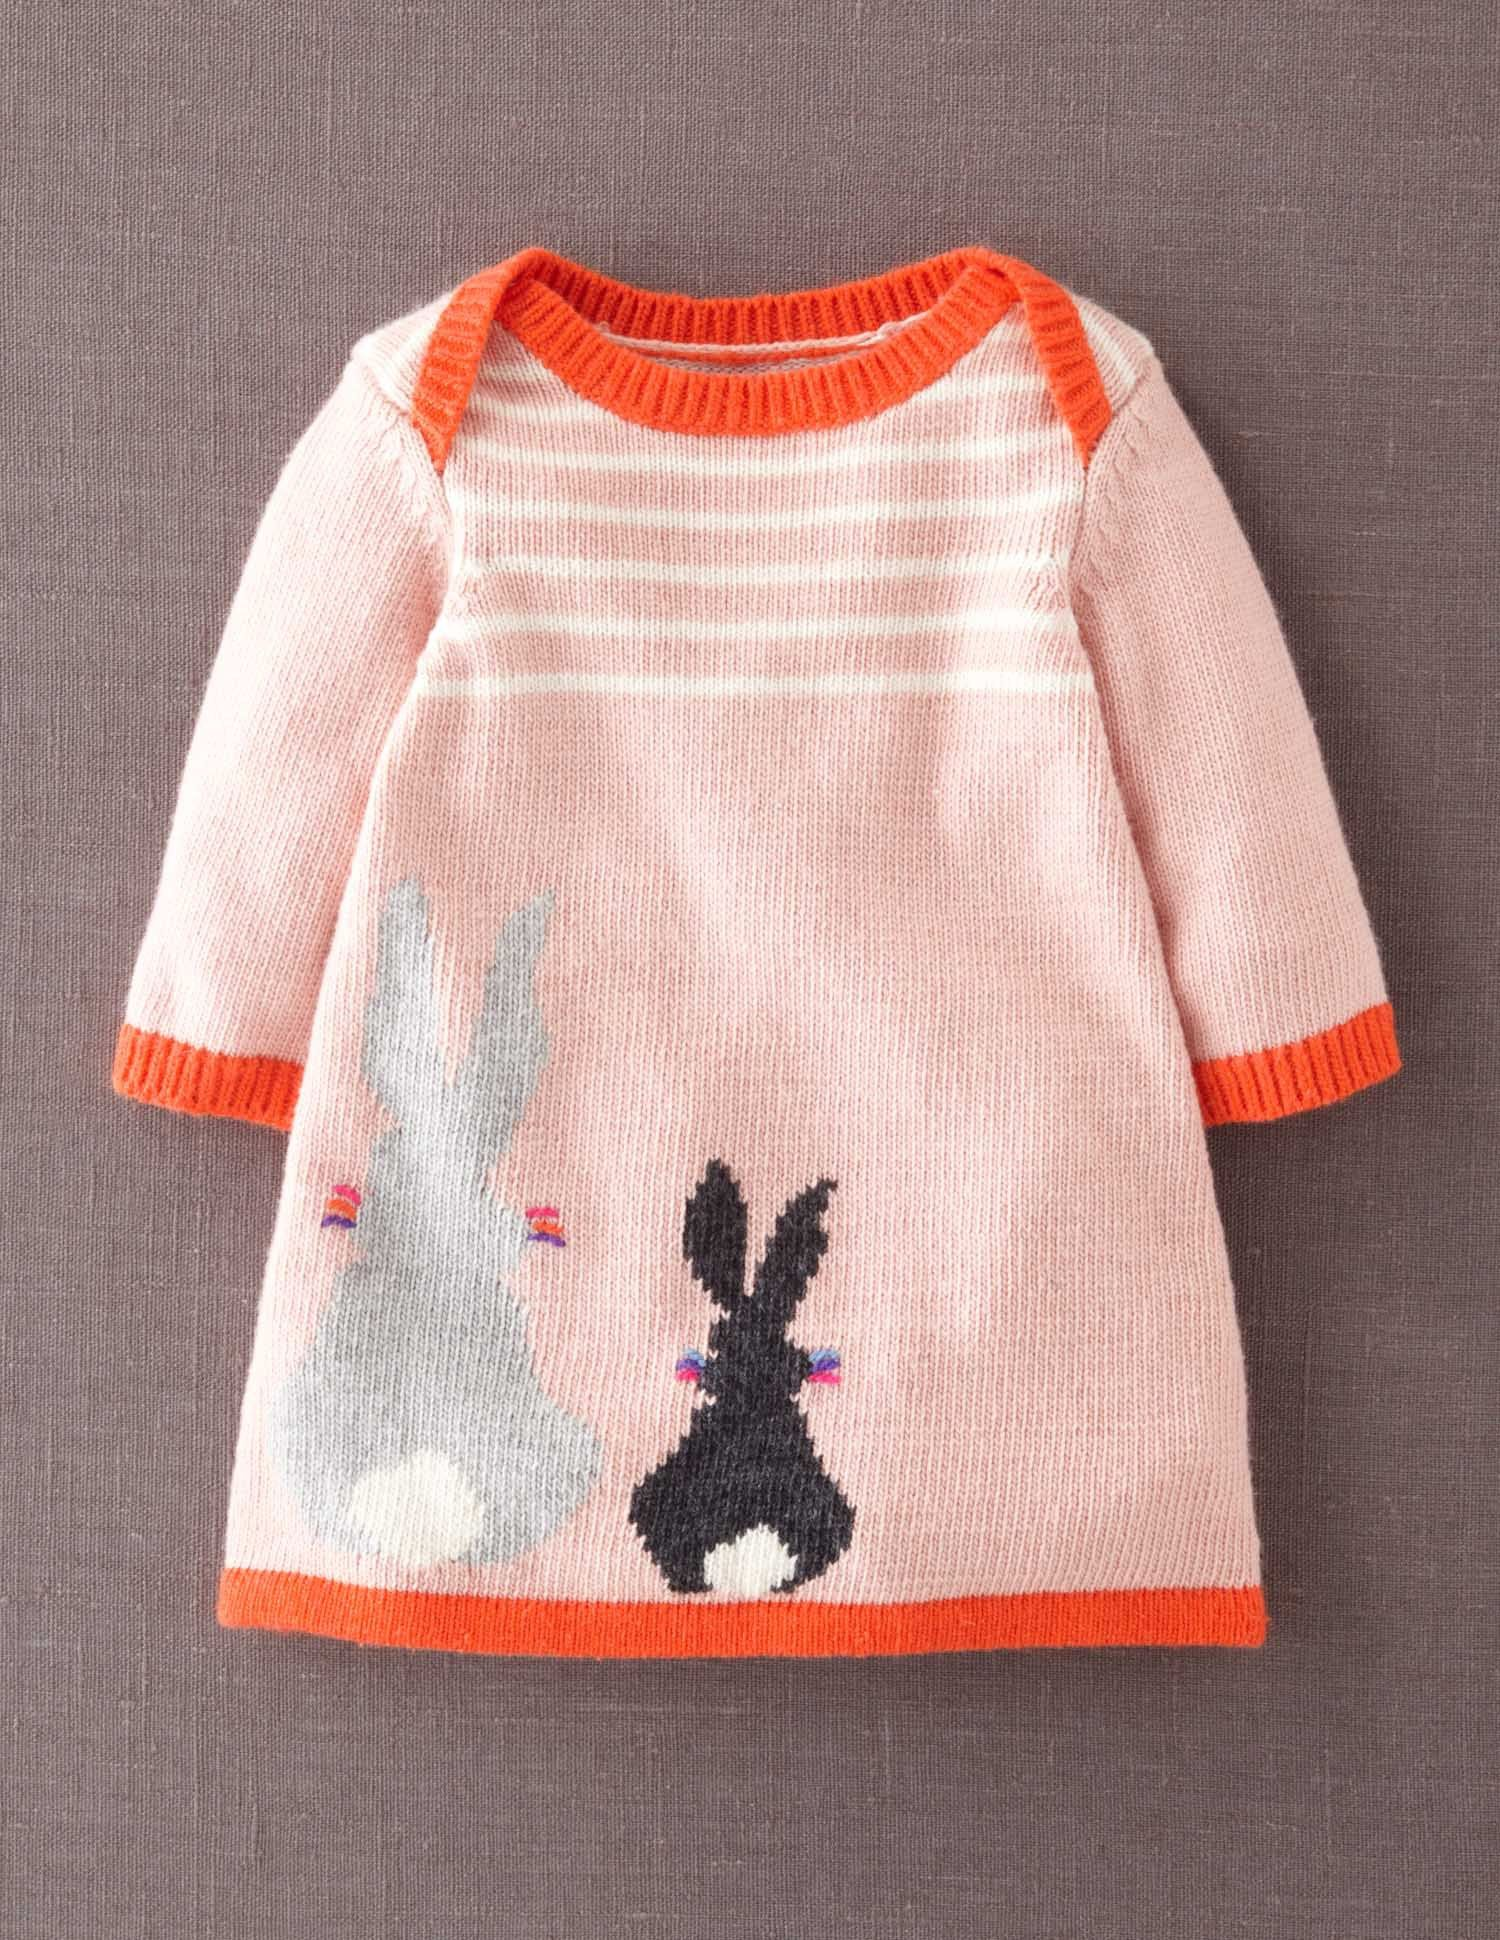 My Baby Knitted Dress Dresses & Pinnies at Boden